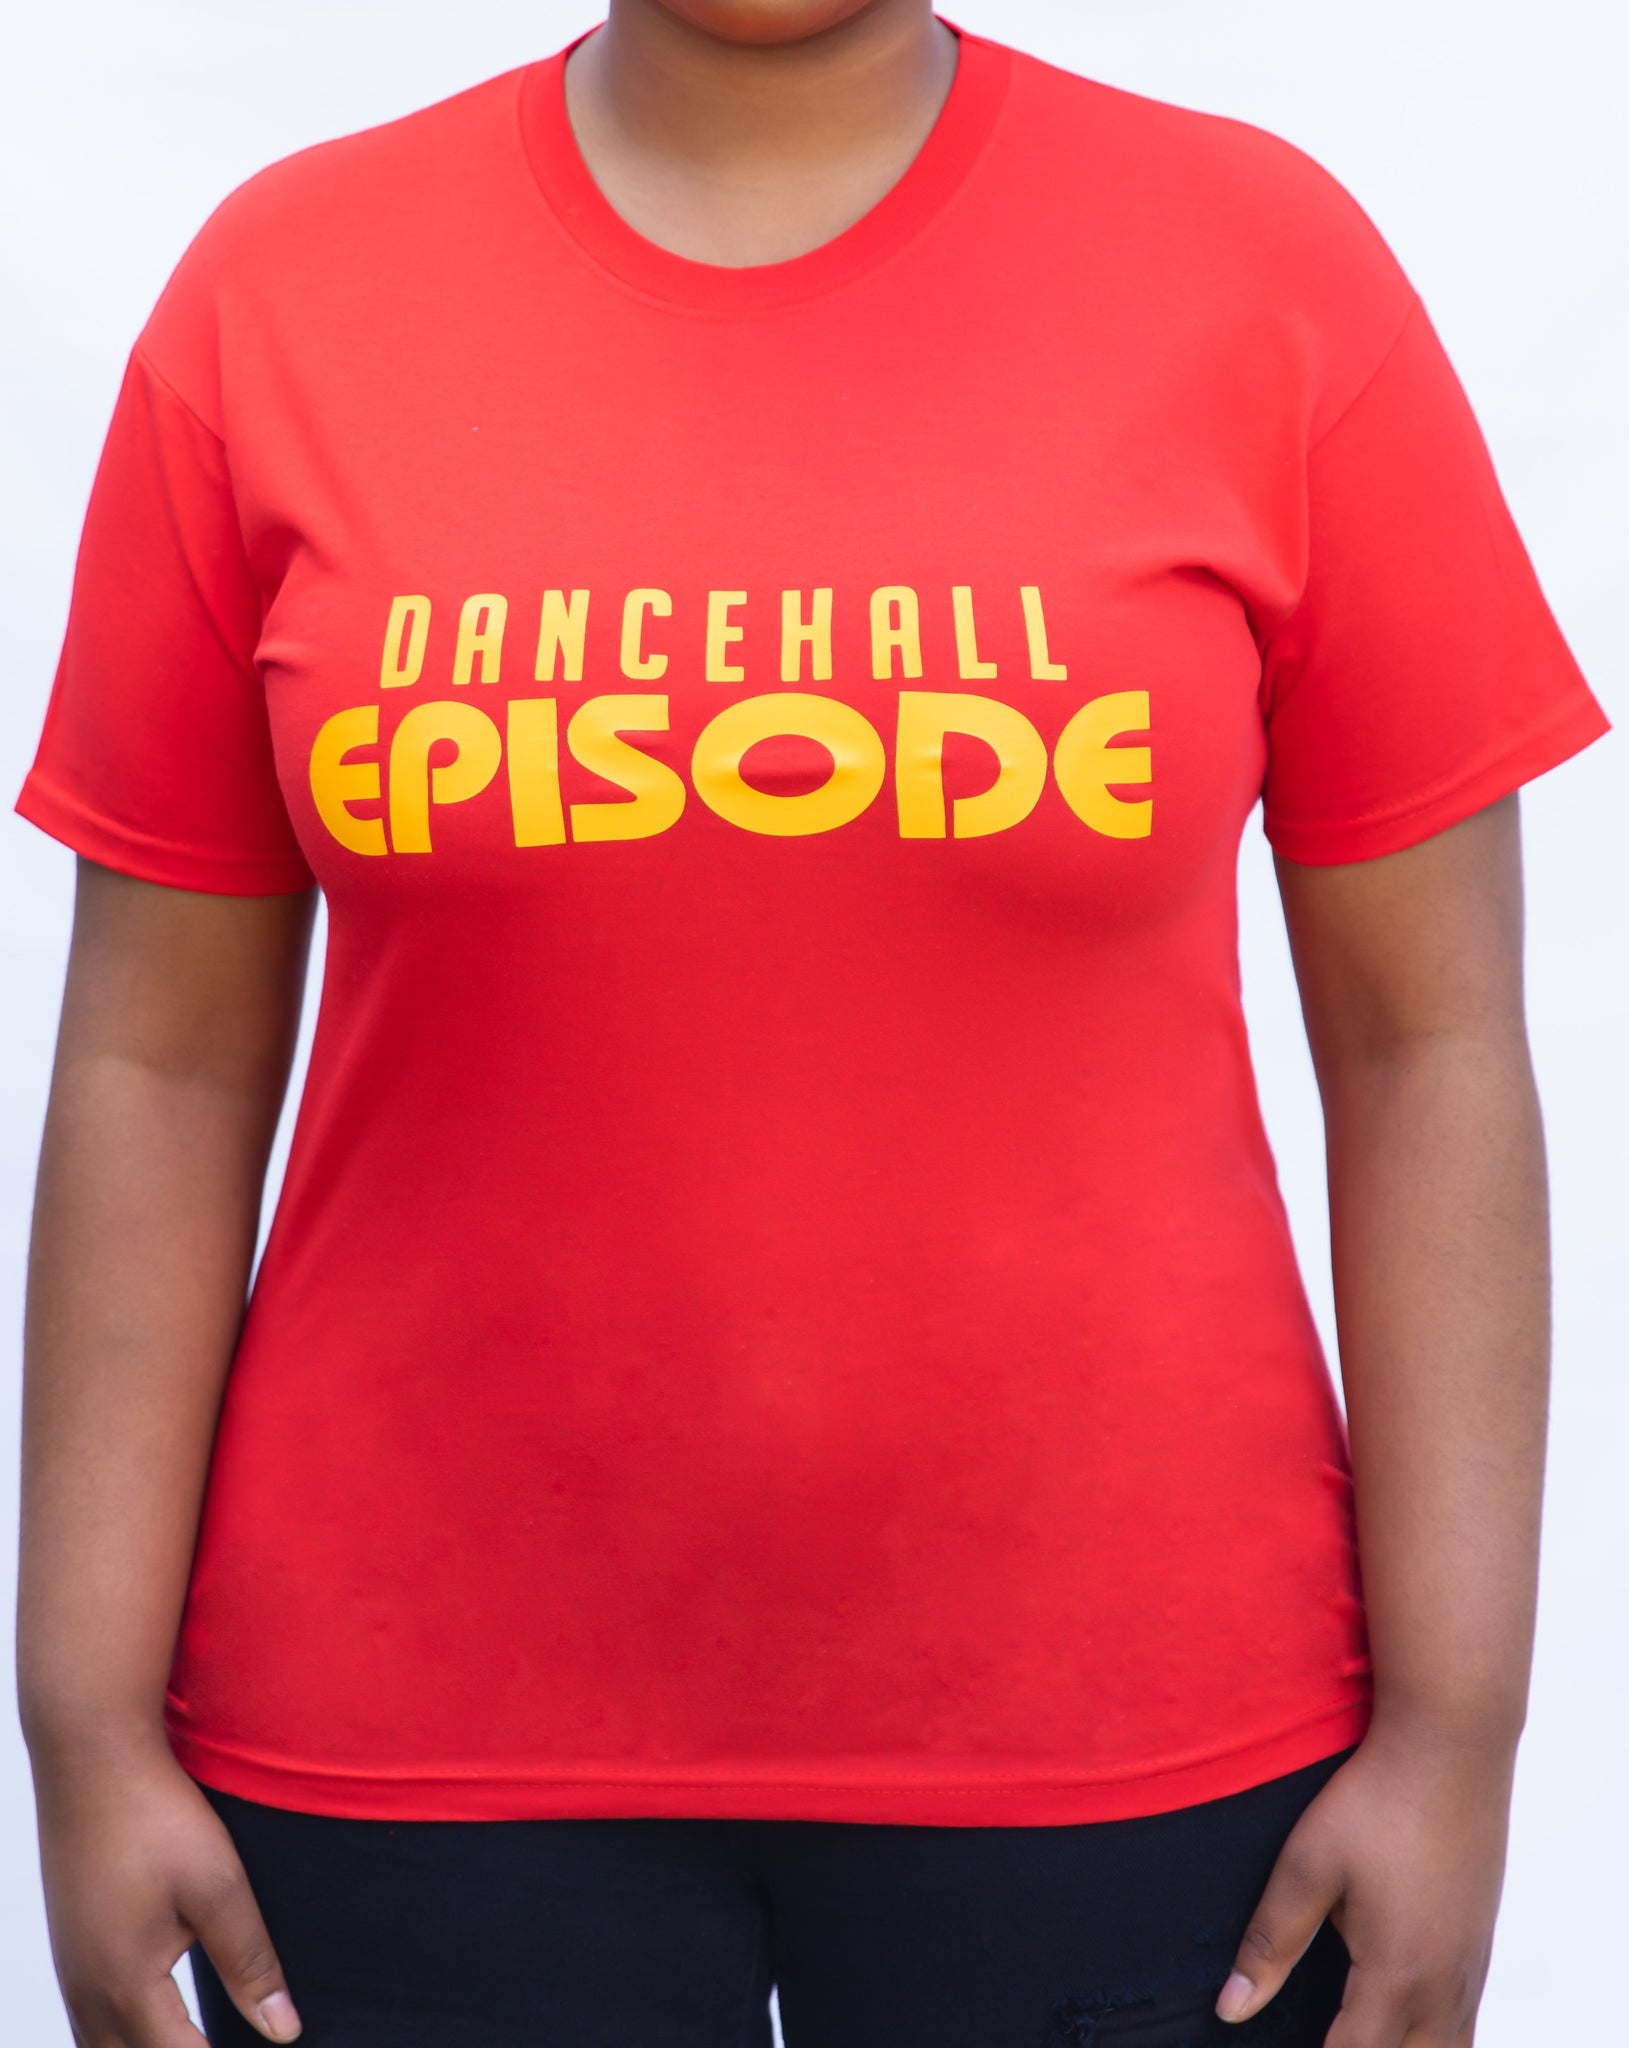 Dancehall Episode Signature Womens T-Shirt - Red